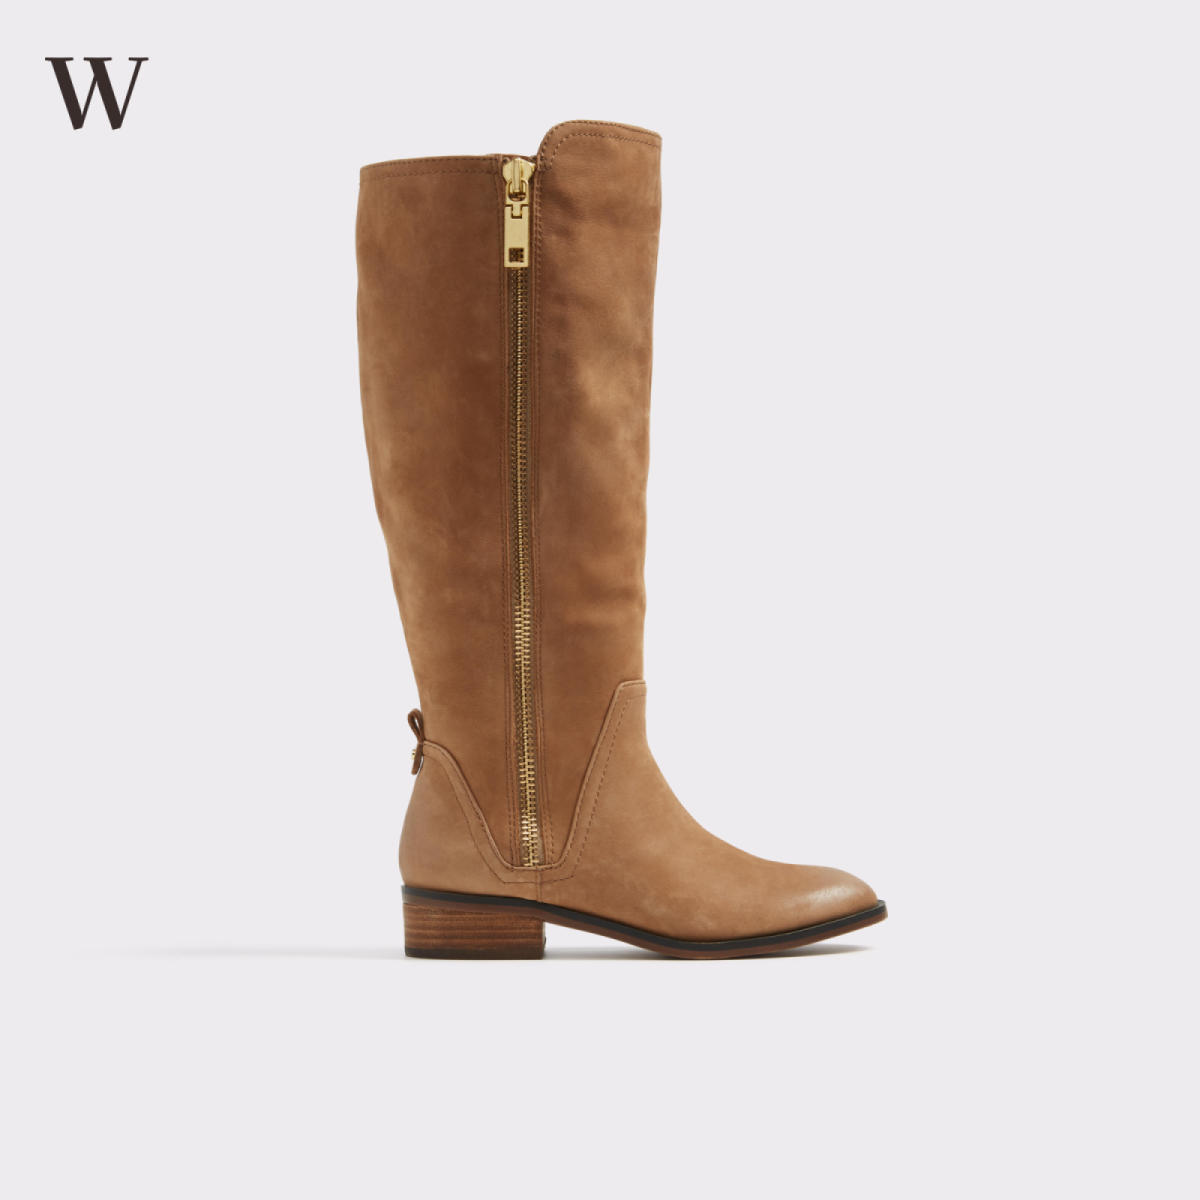 Mihaela_w Medium Brown Women's Knee-high boots | ALDO US at Aldo Shoes in Victor, NY | Tuggl